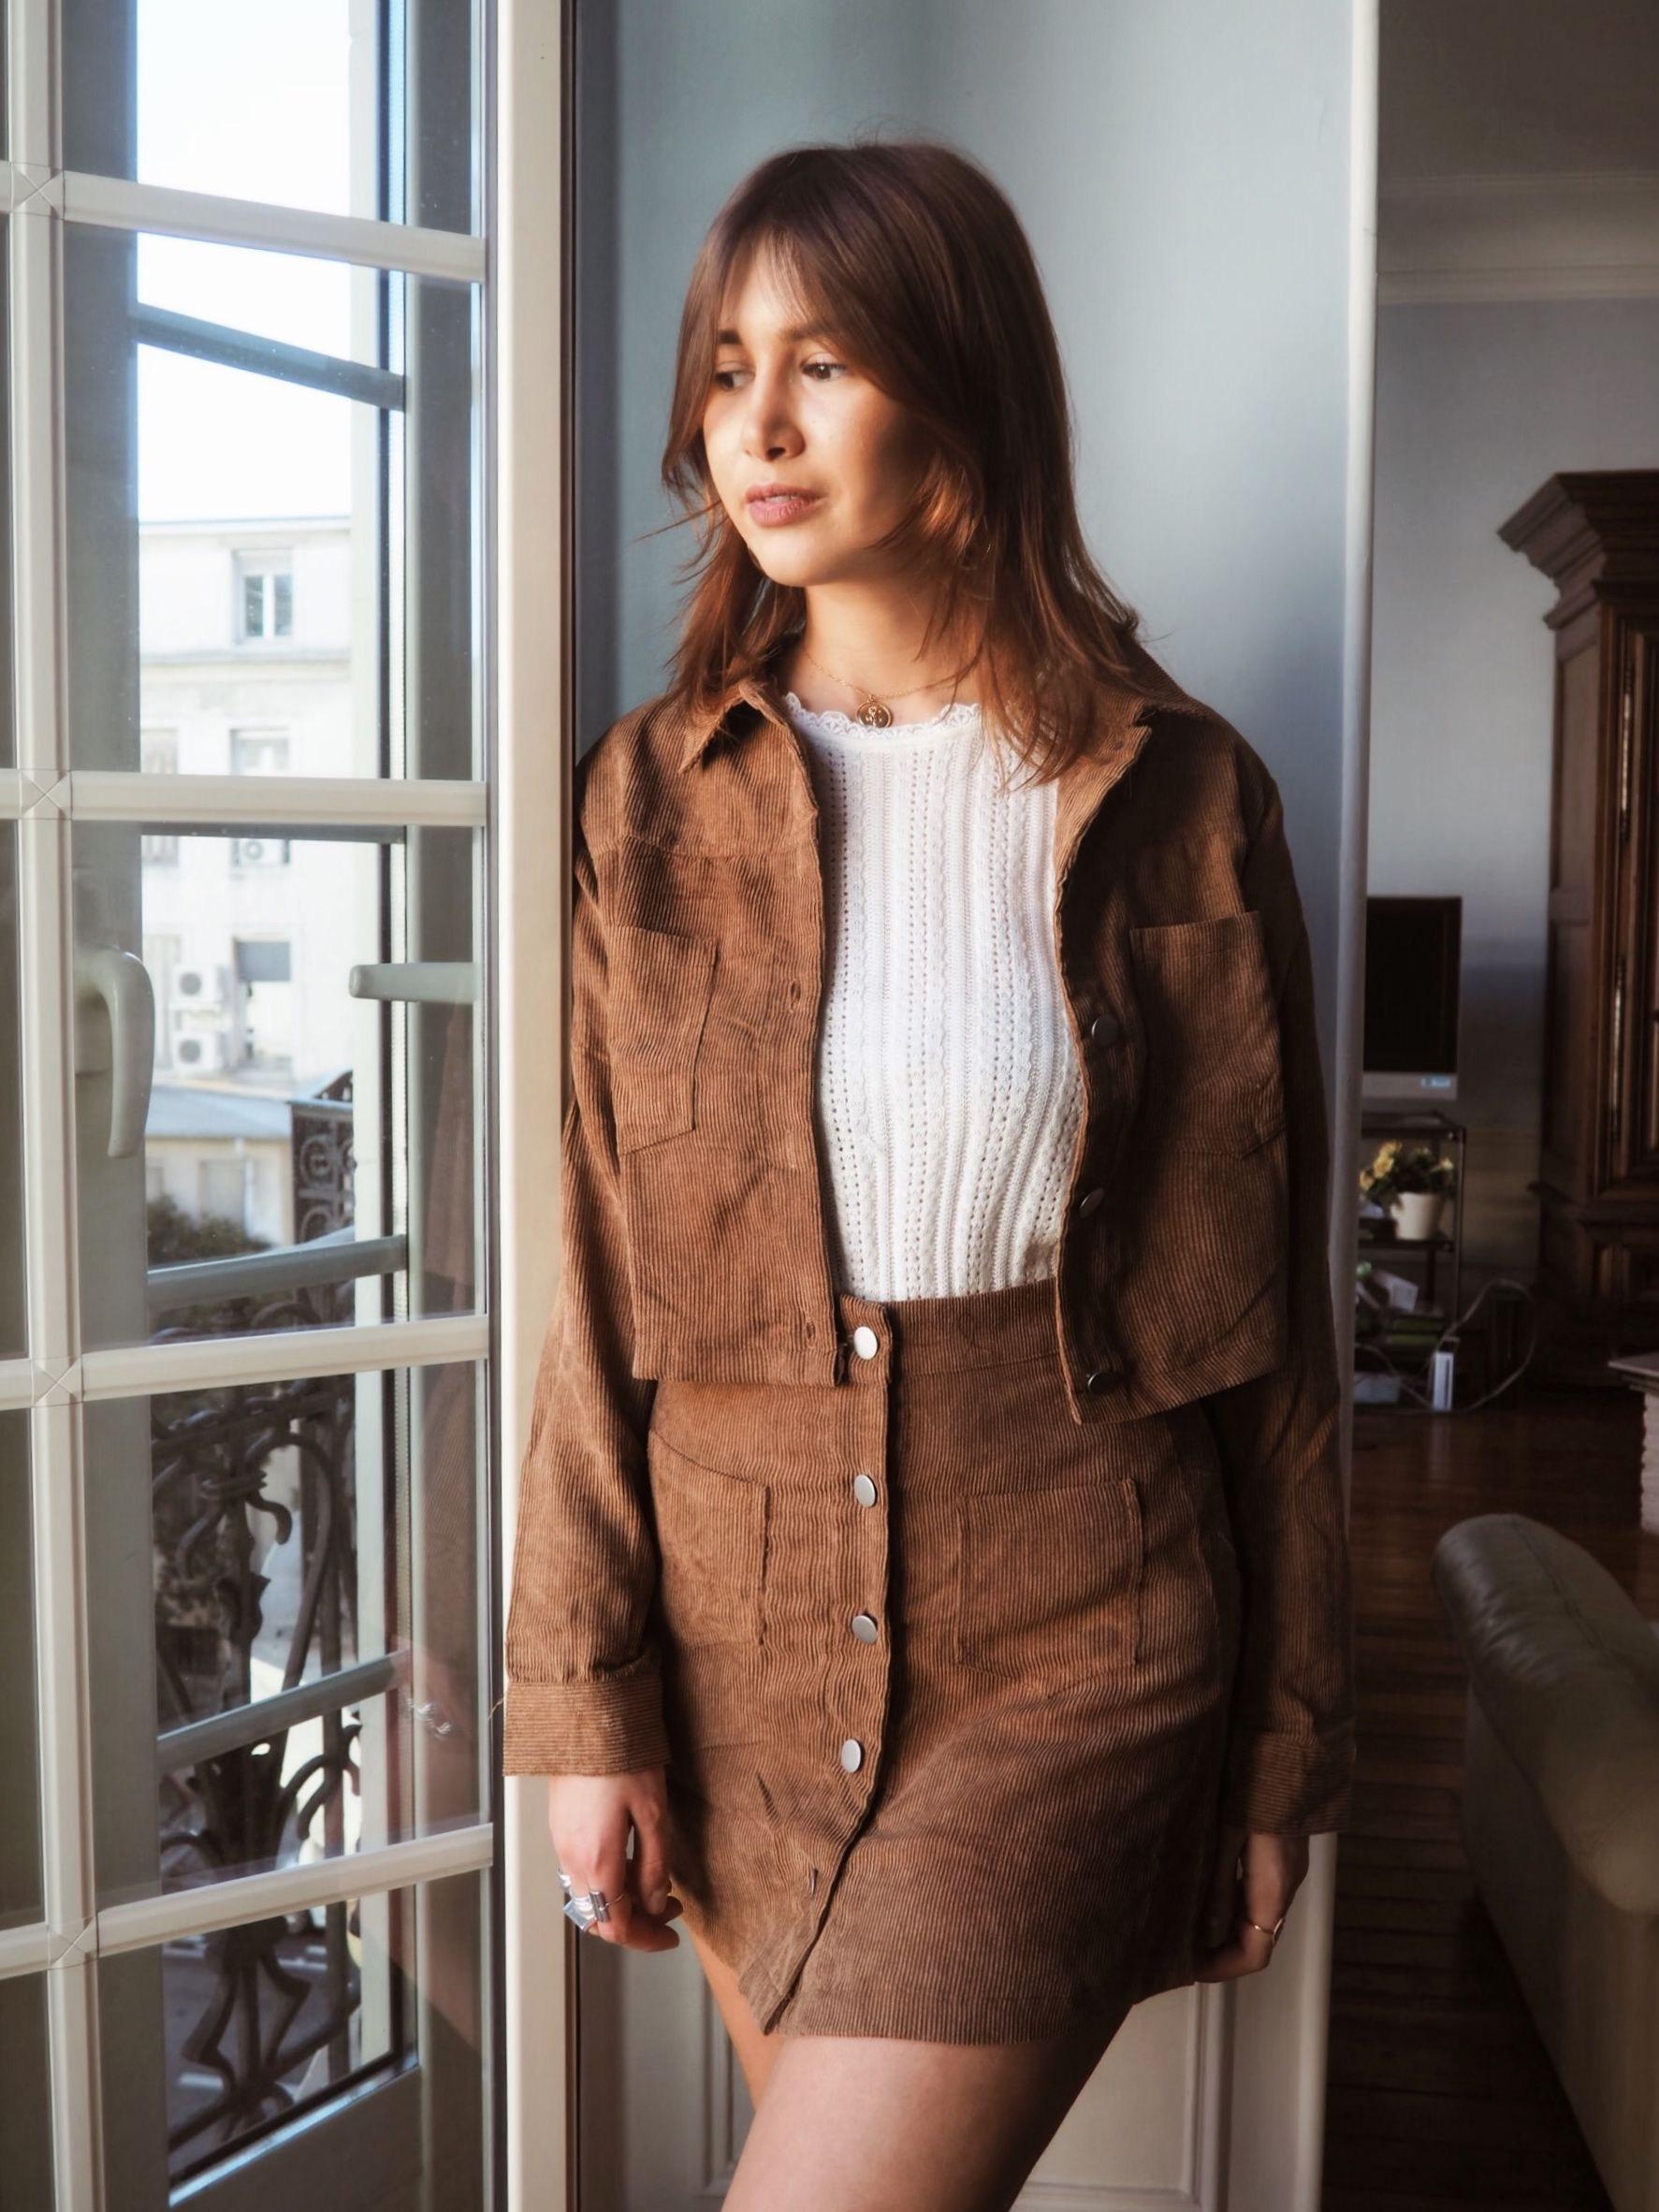 Veste et jupe en velour côtelé marron | Jacket and skirt